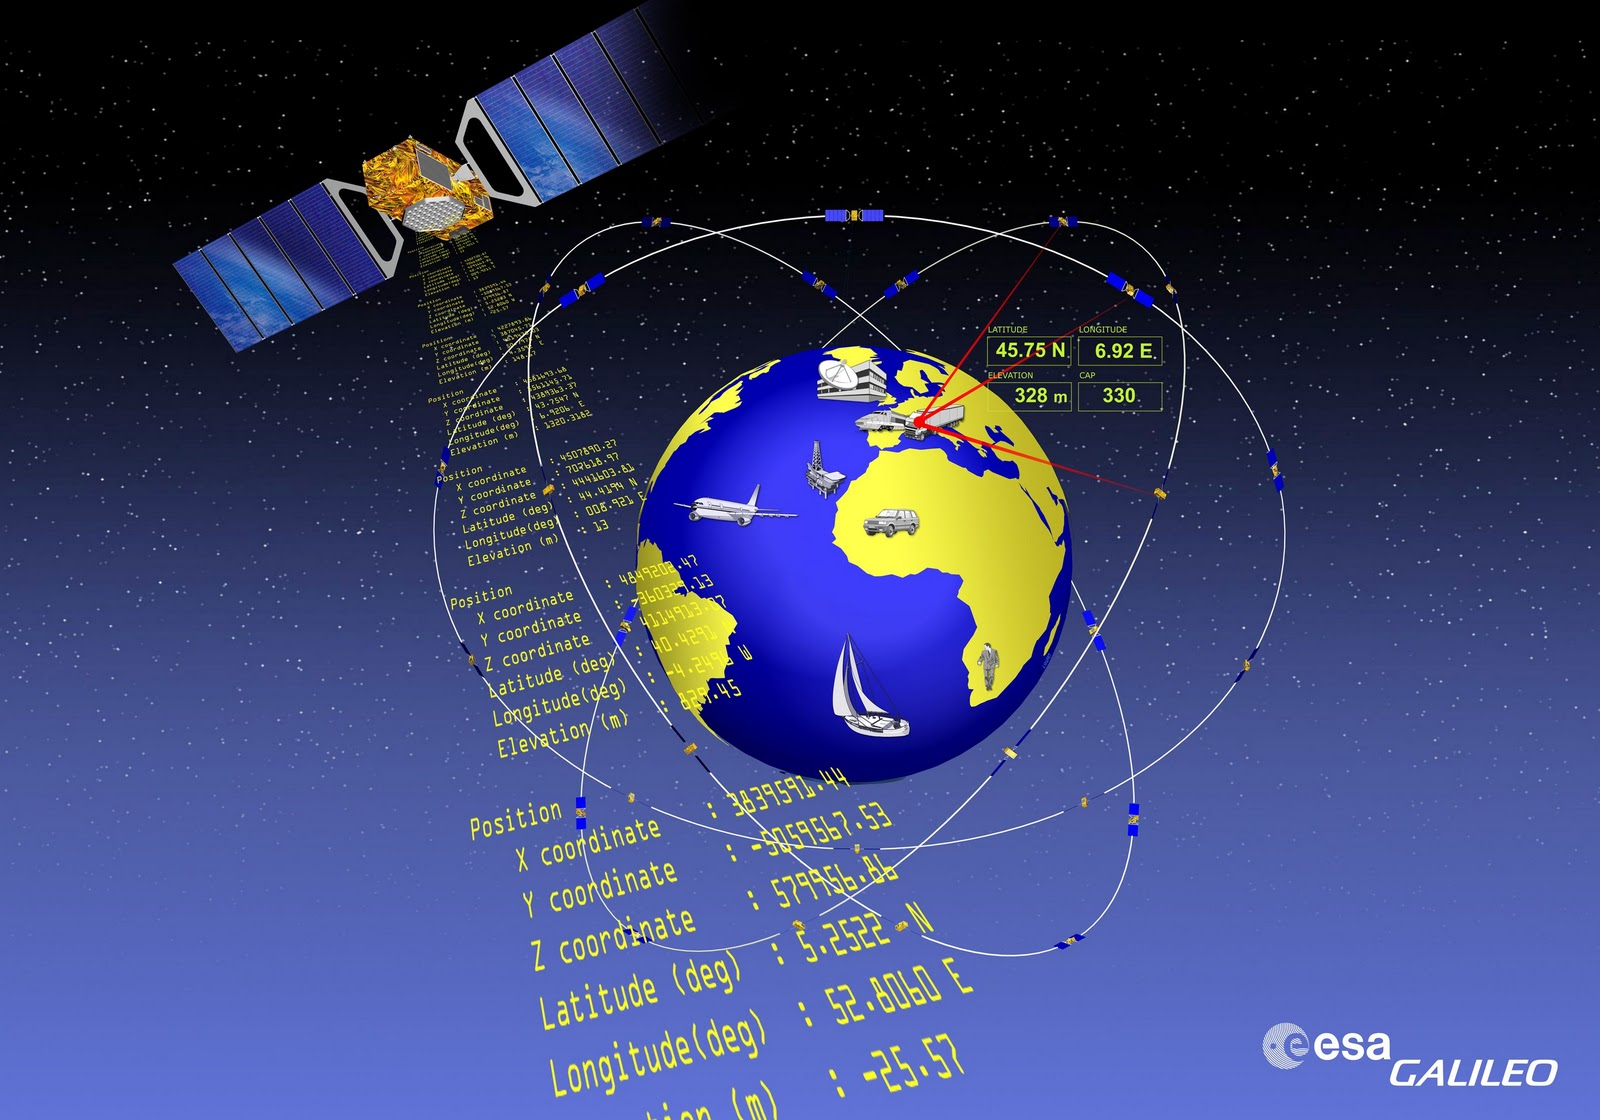 galileo project The galileo project was a nasa mission of space exploration that involved sending a satellite to jupiter the mission was named after the famous astronomer galileo.